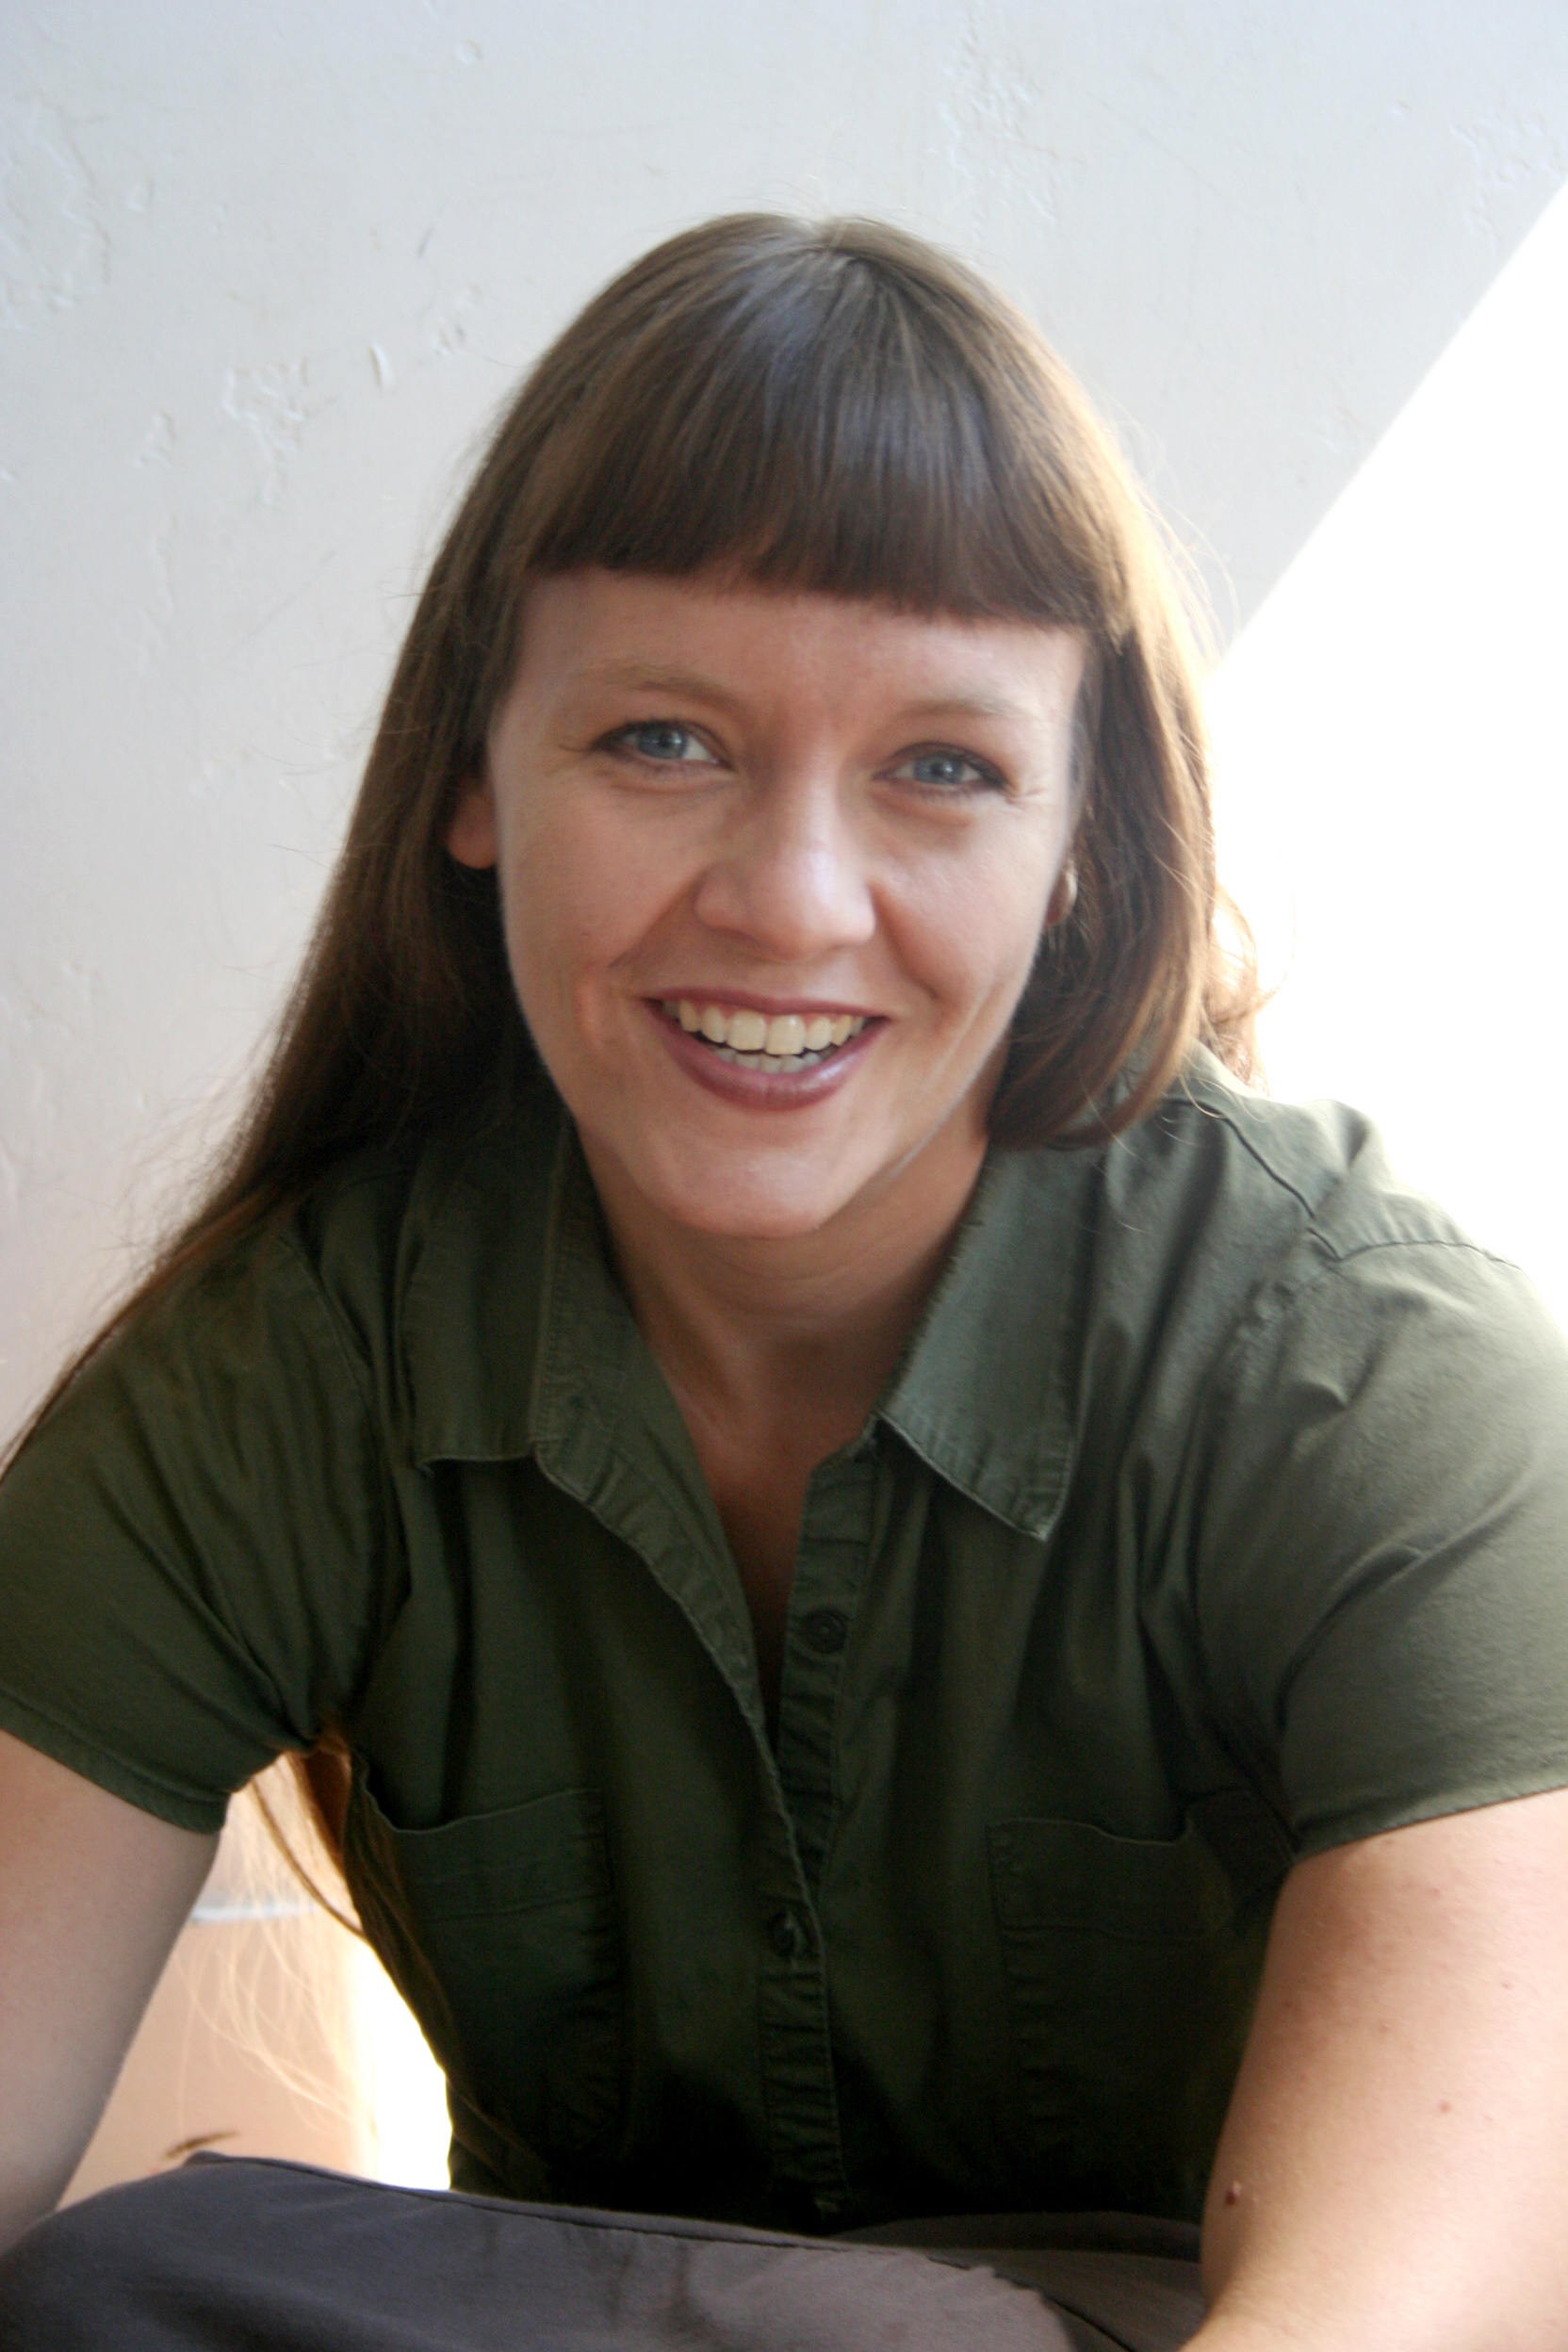 Julia Flood, LCSW - San Francisco Bay Area Emotionally Focused Therapist & Couples Counselor (Walnut Creek) with Marin Intimacy, Couples & Sex Therapy Center.